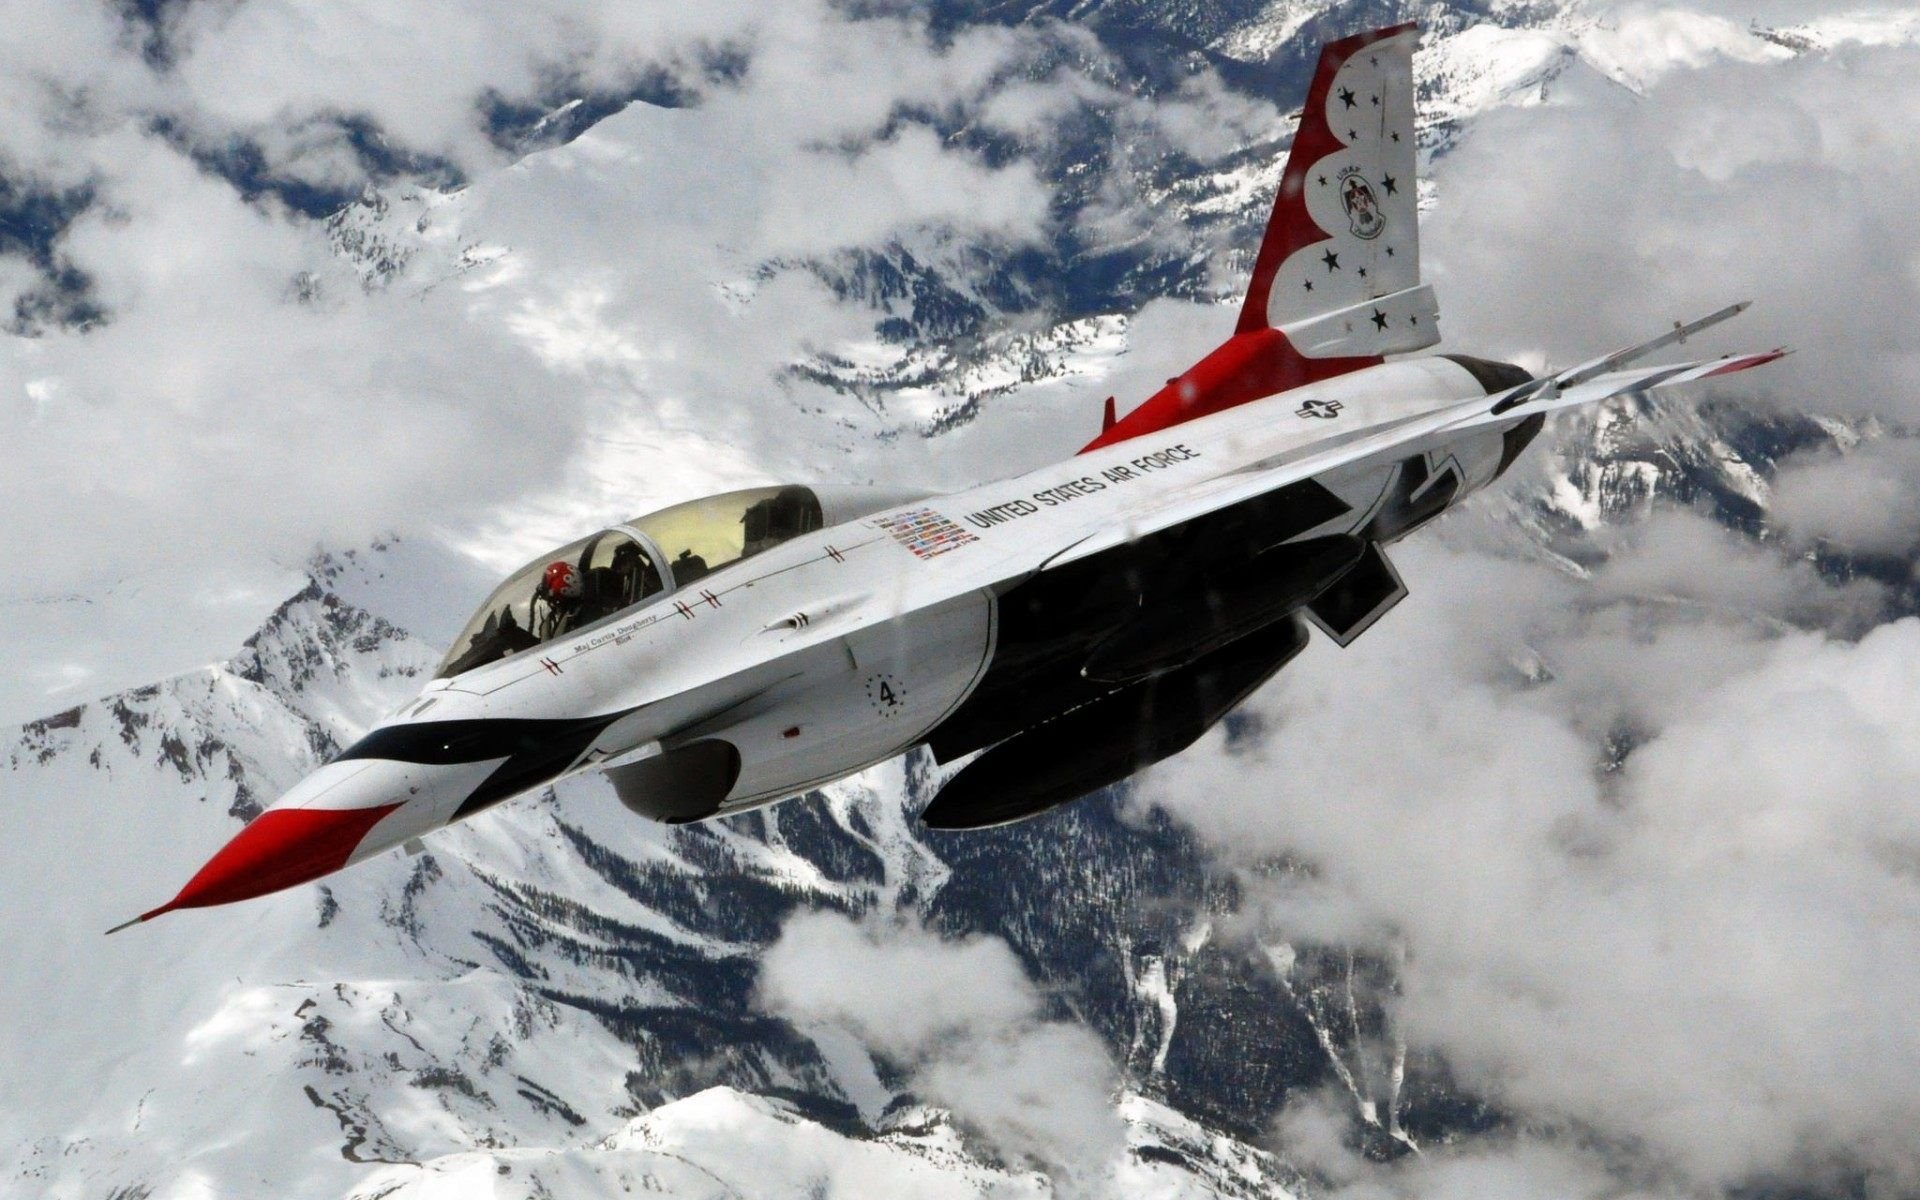 Fighter jet wallpapers high resolution